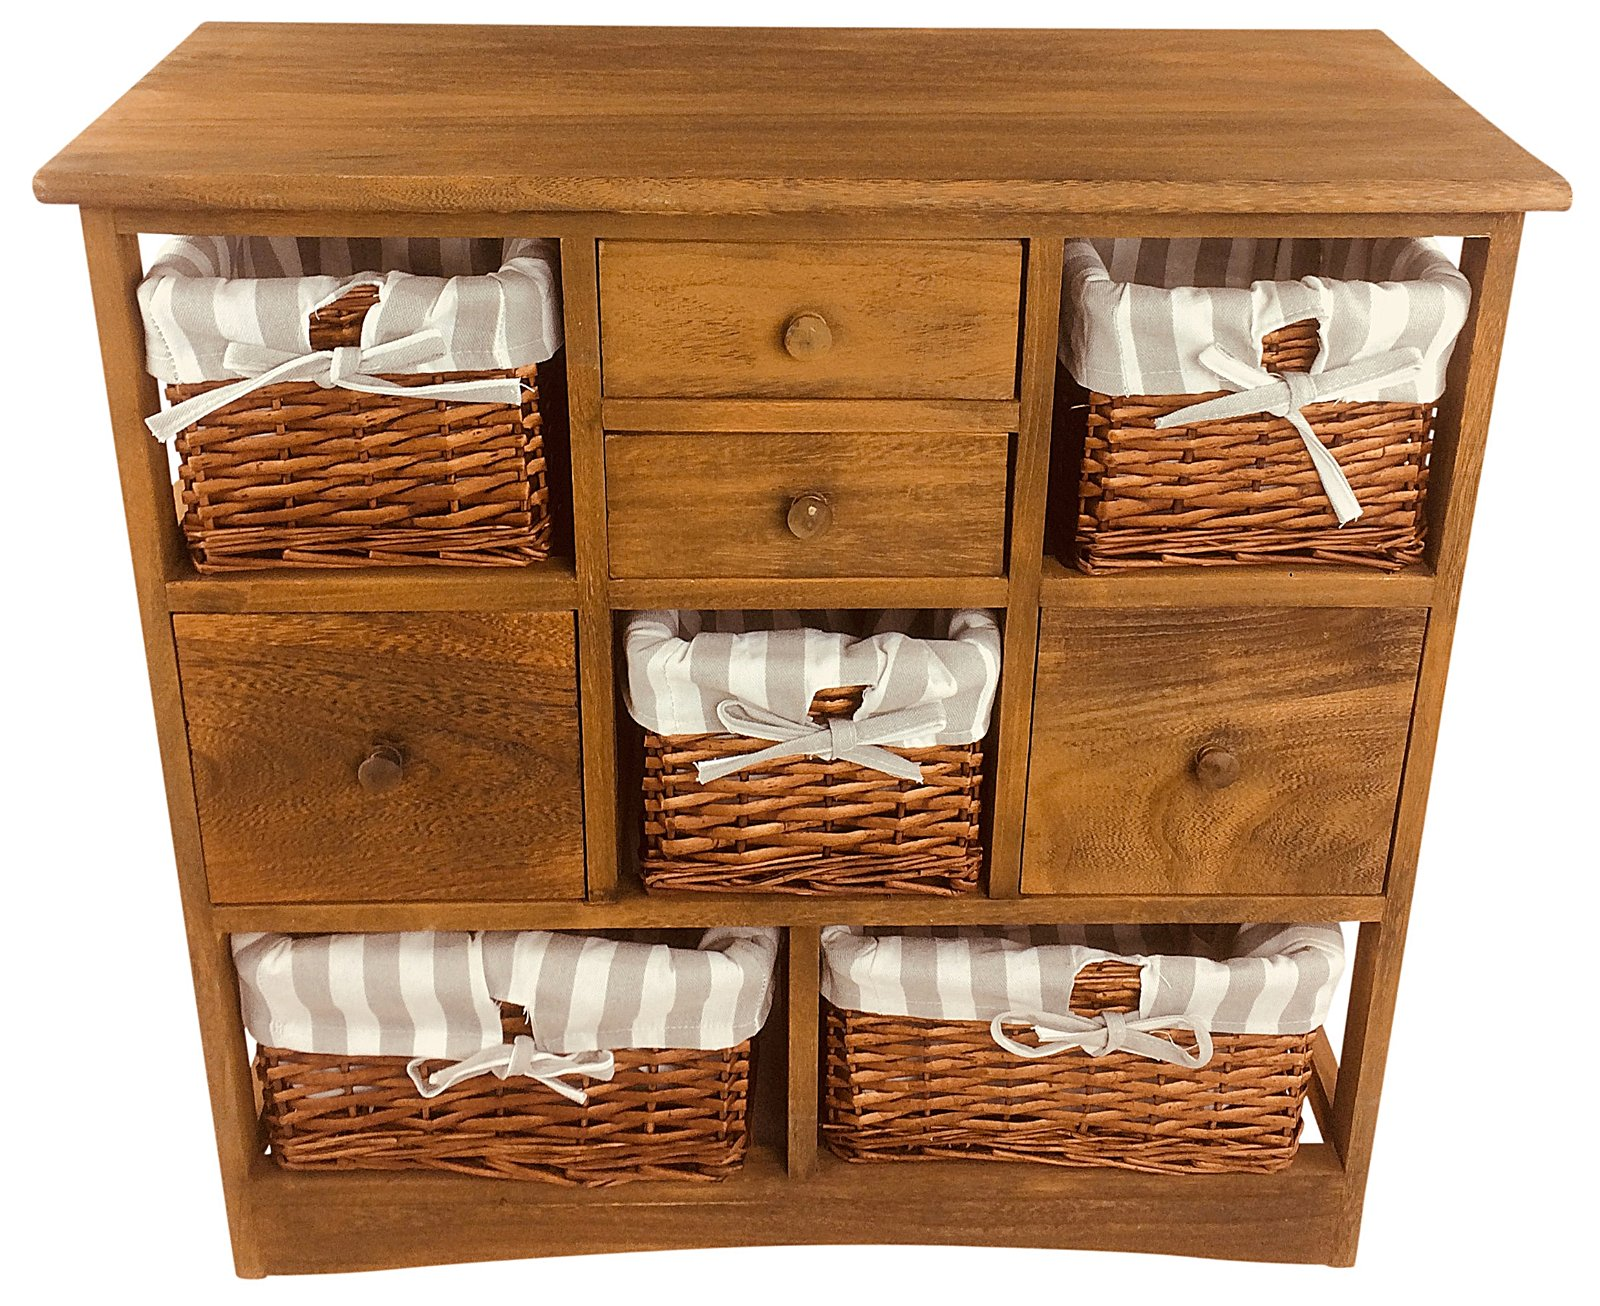 Wood Cabinet With 5 Baskets & 4 Drawers 73cm